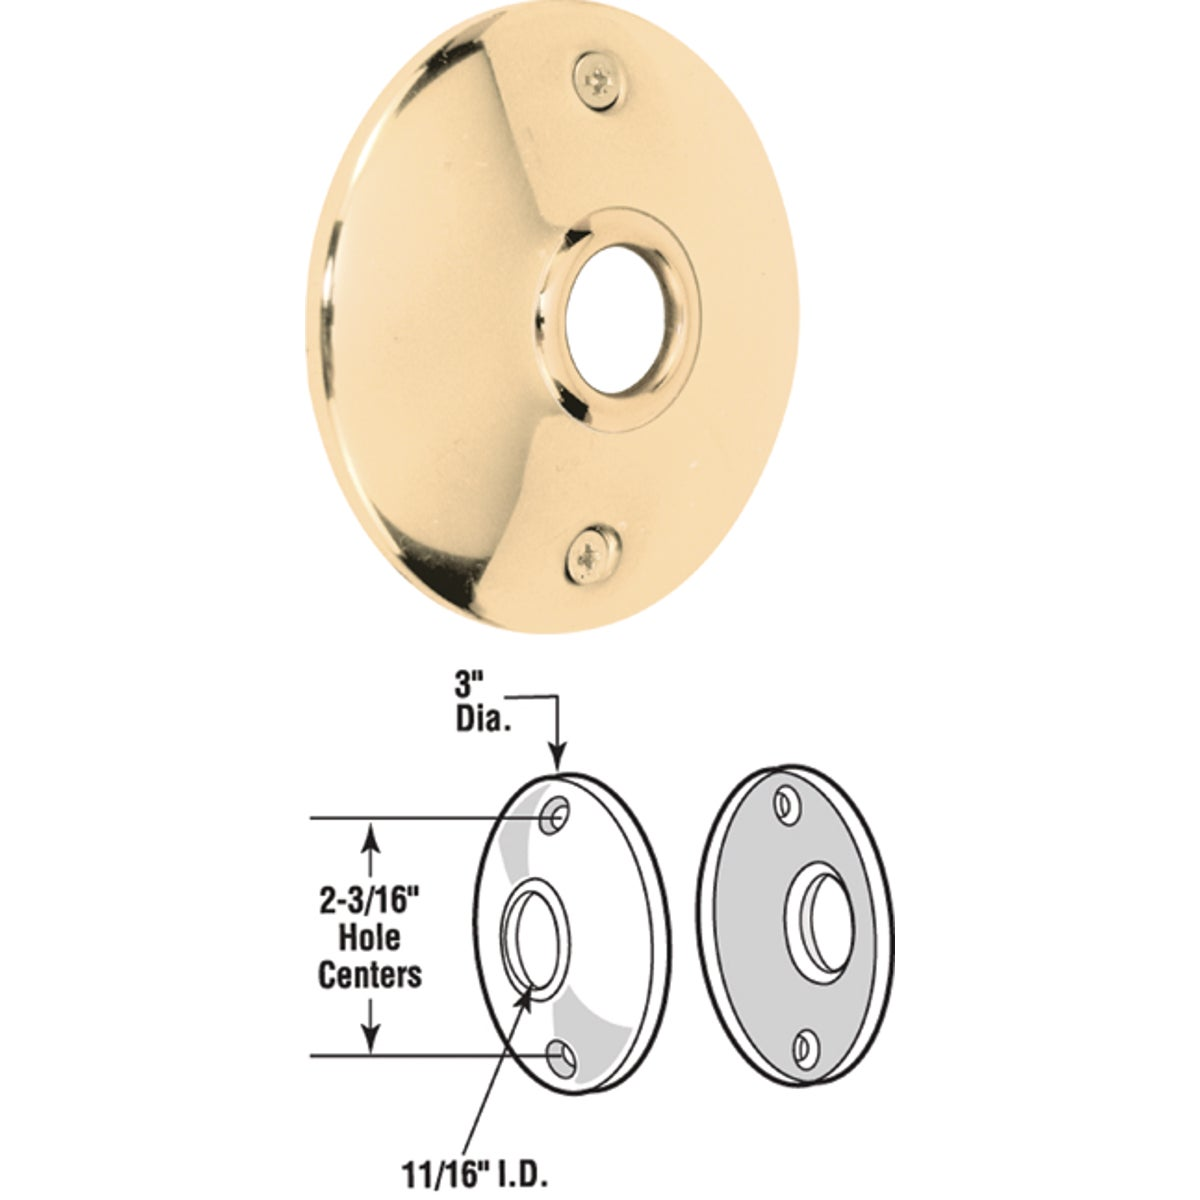 BRS ROSSETTE DOOR KNOB - E 2296 by Prime Line Products